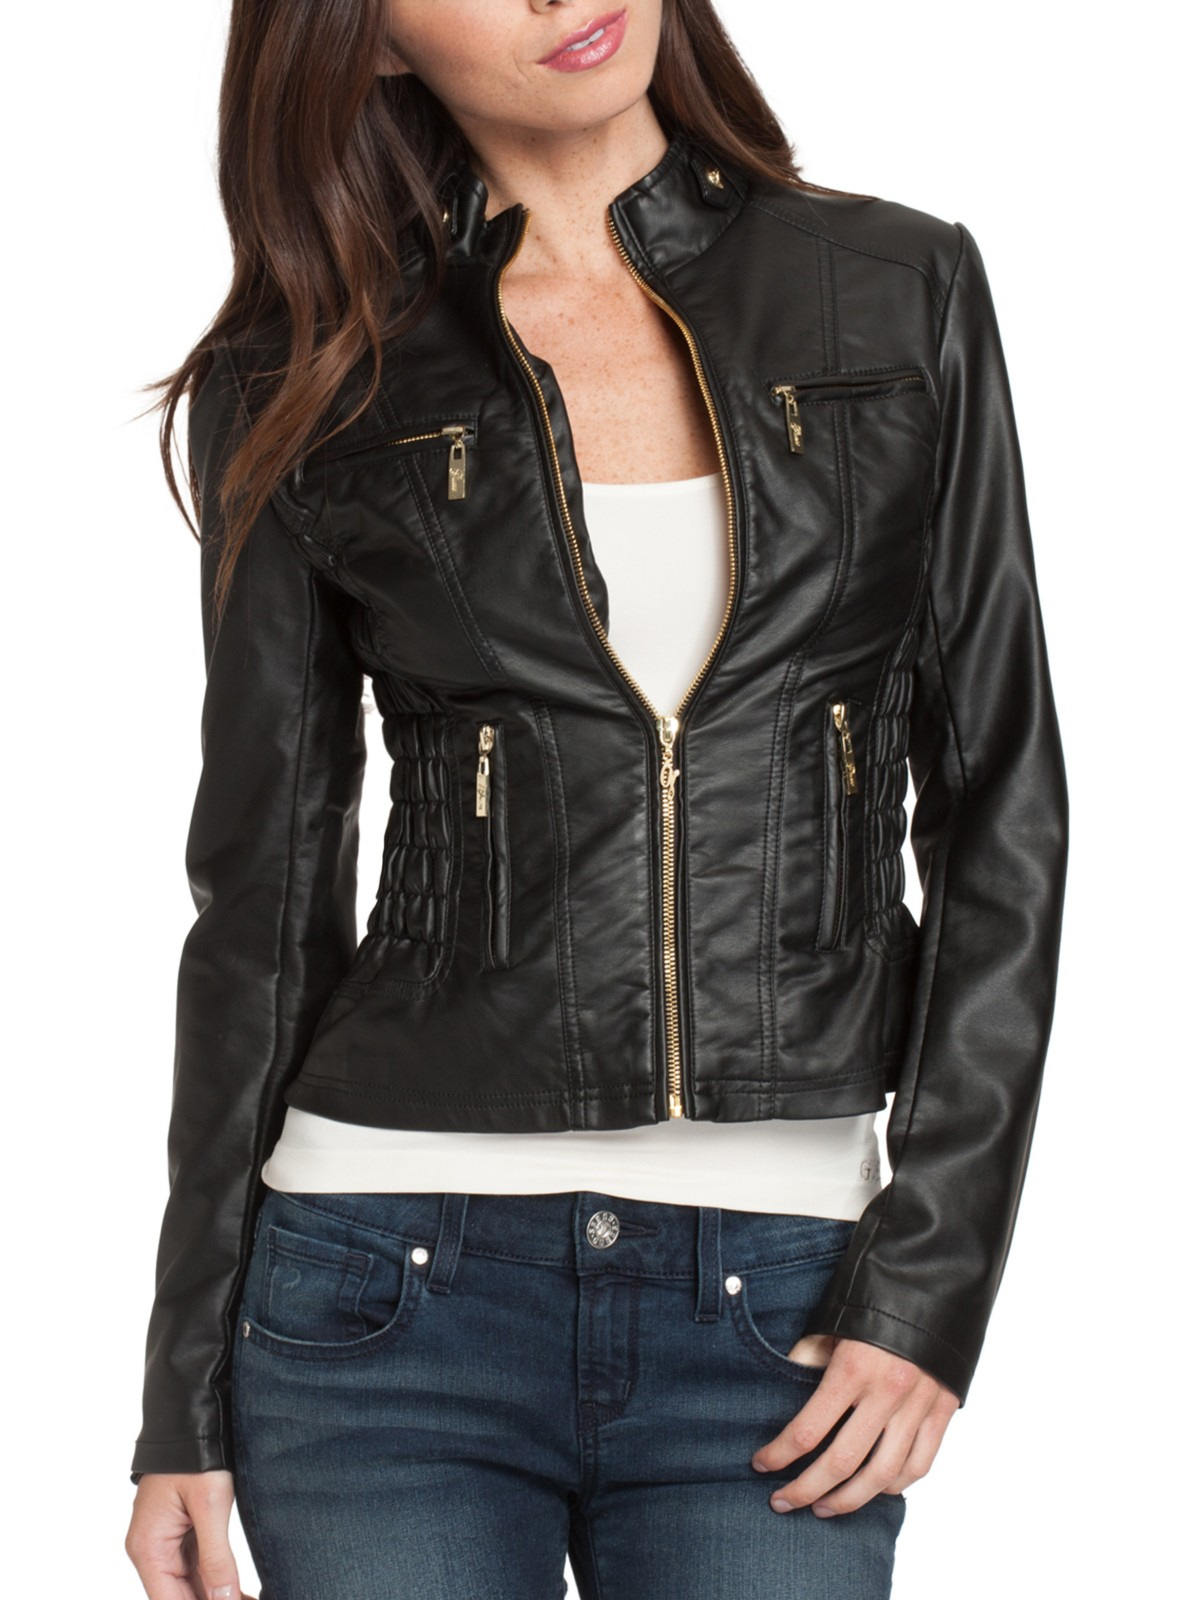 Fake Leather Jackets